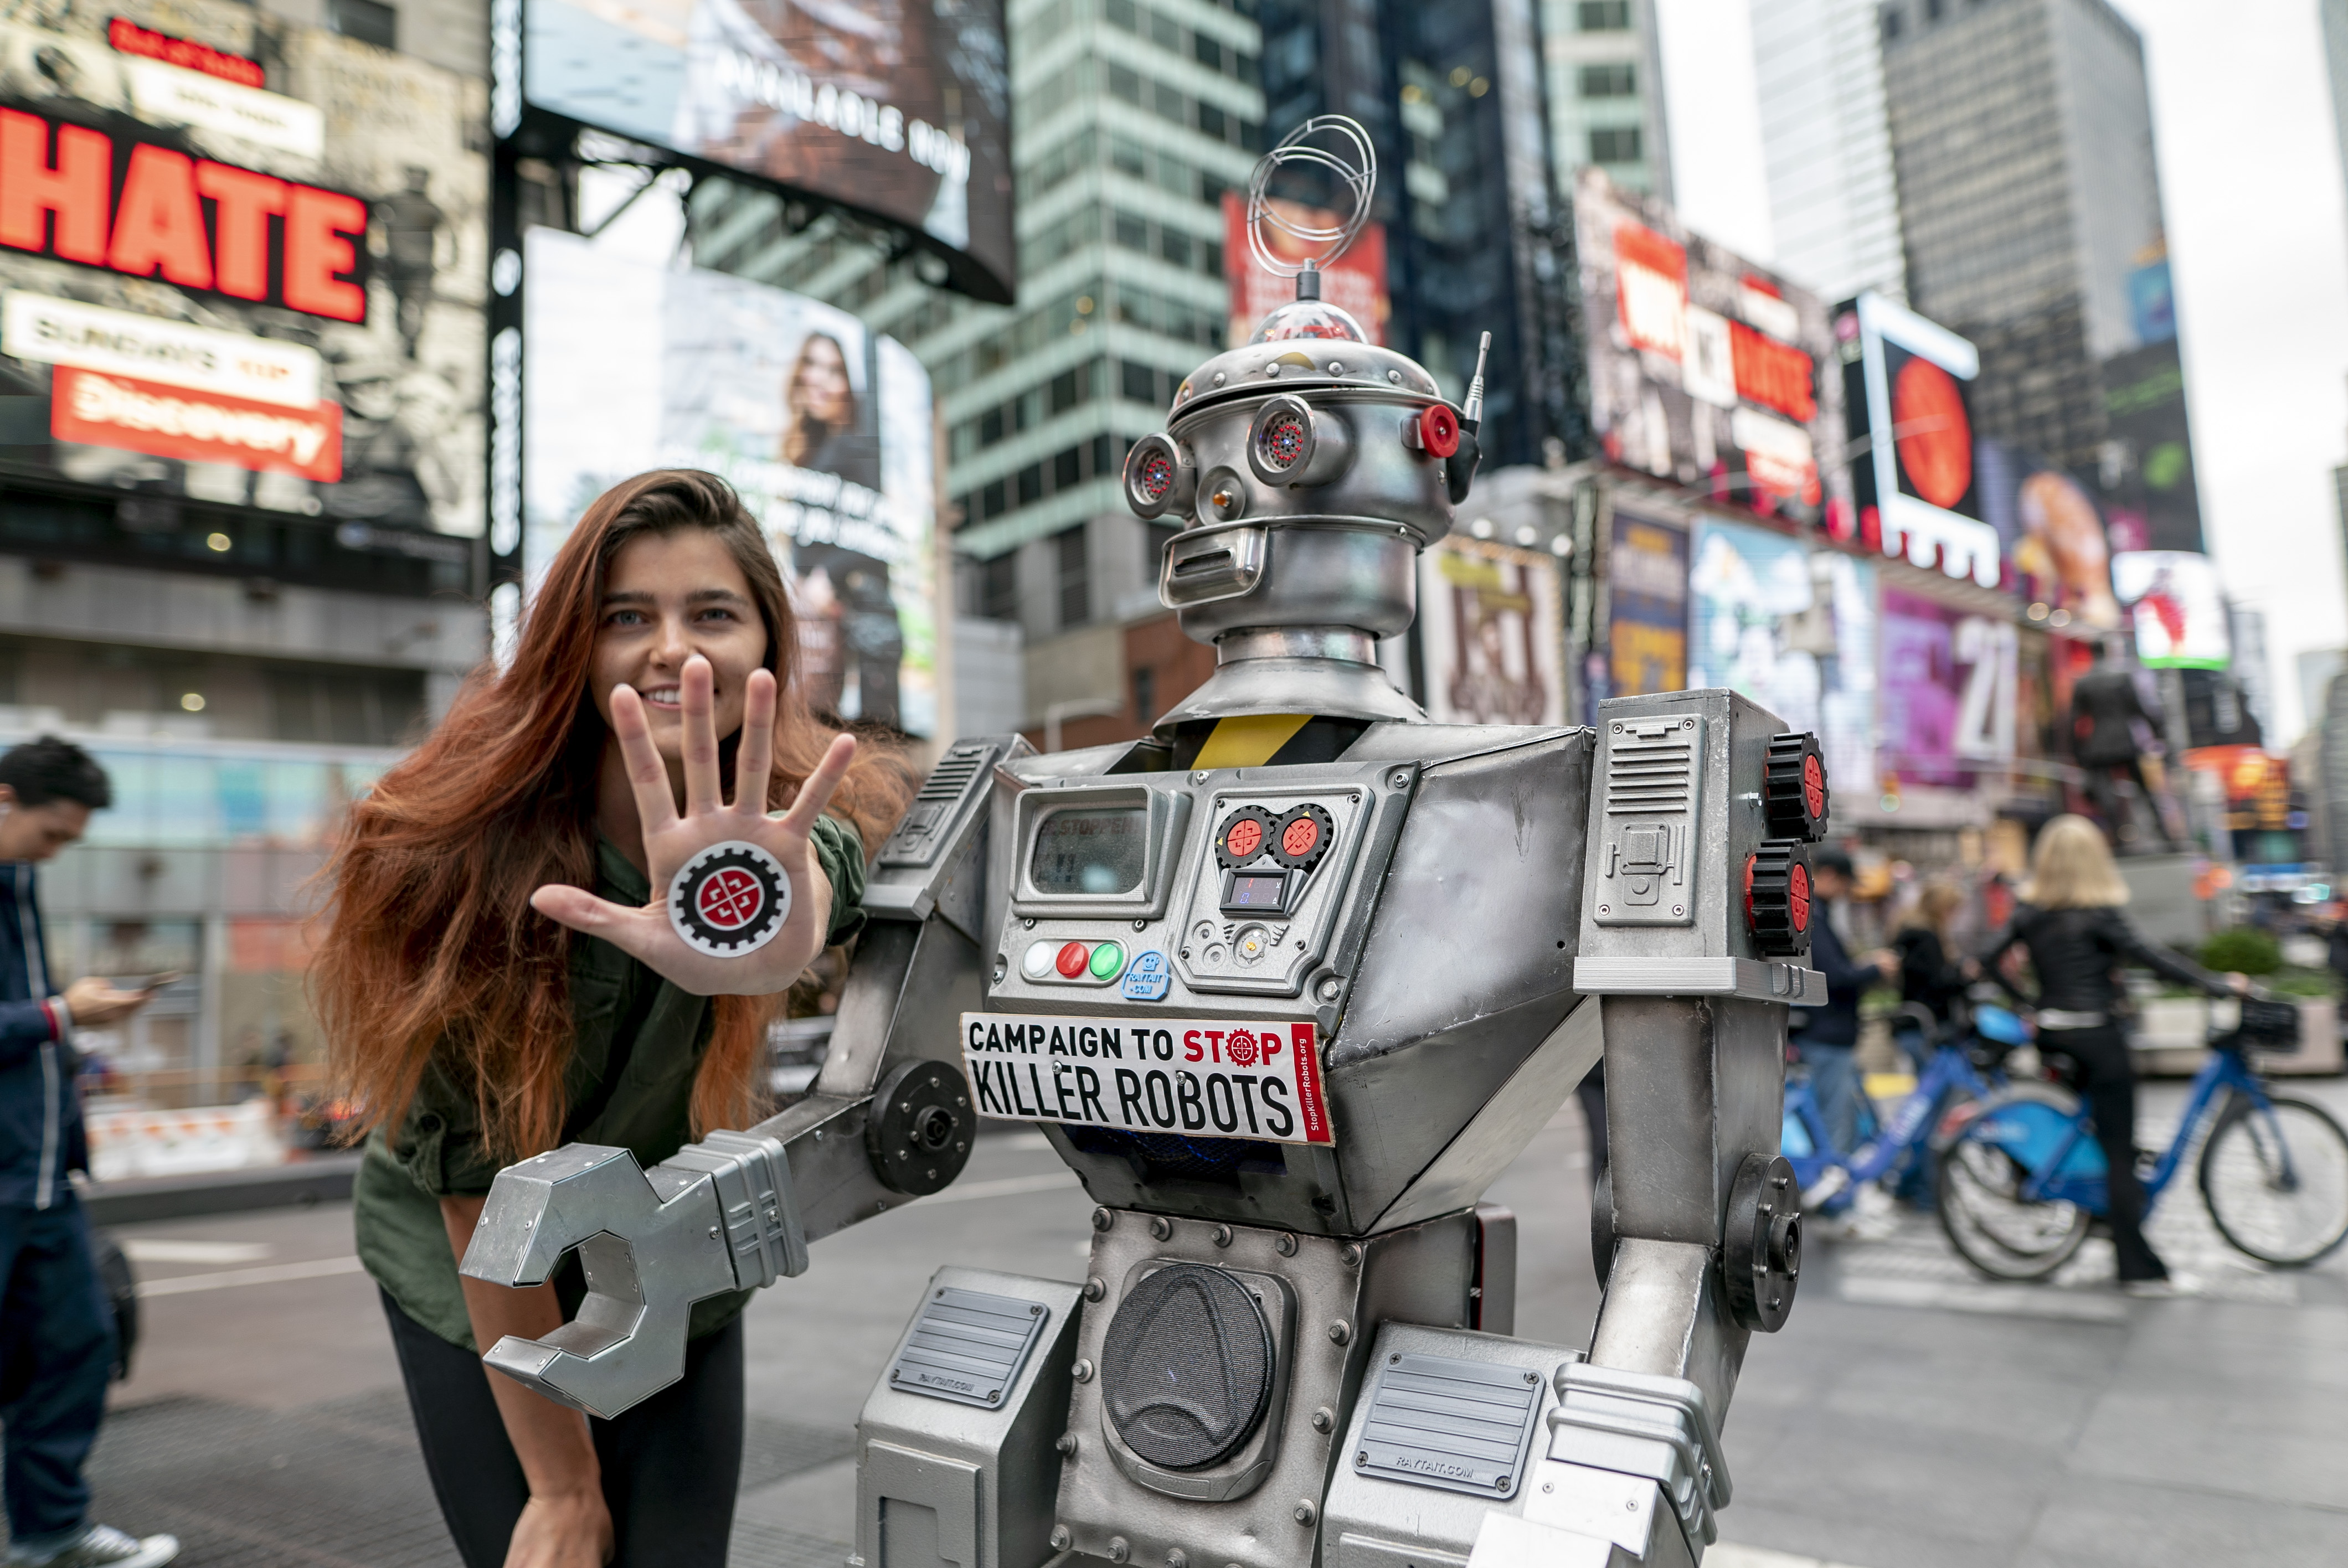 A campaigner poses with a robot in Times Square.